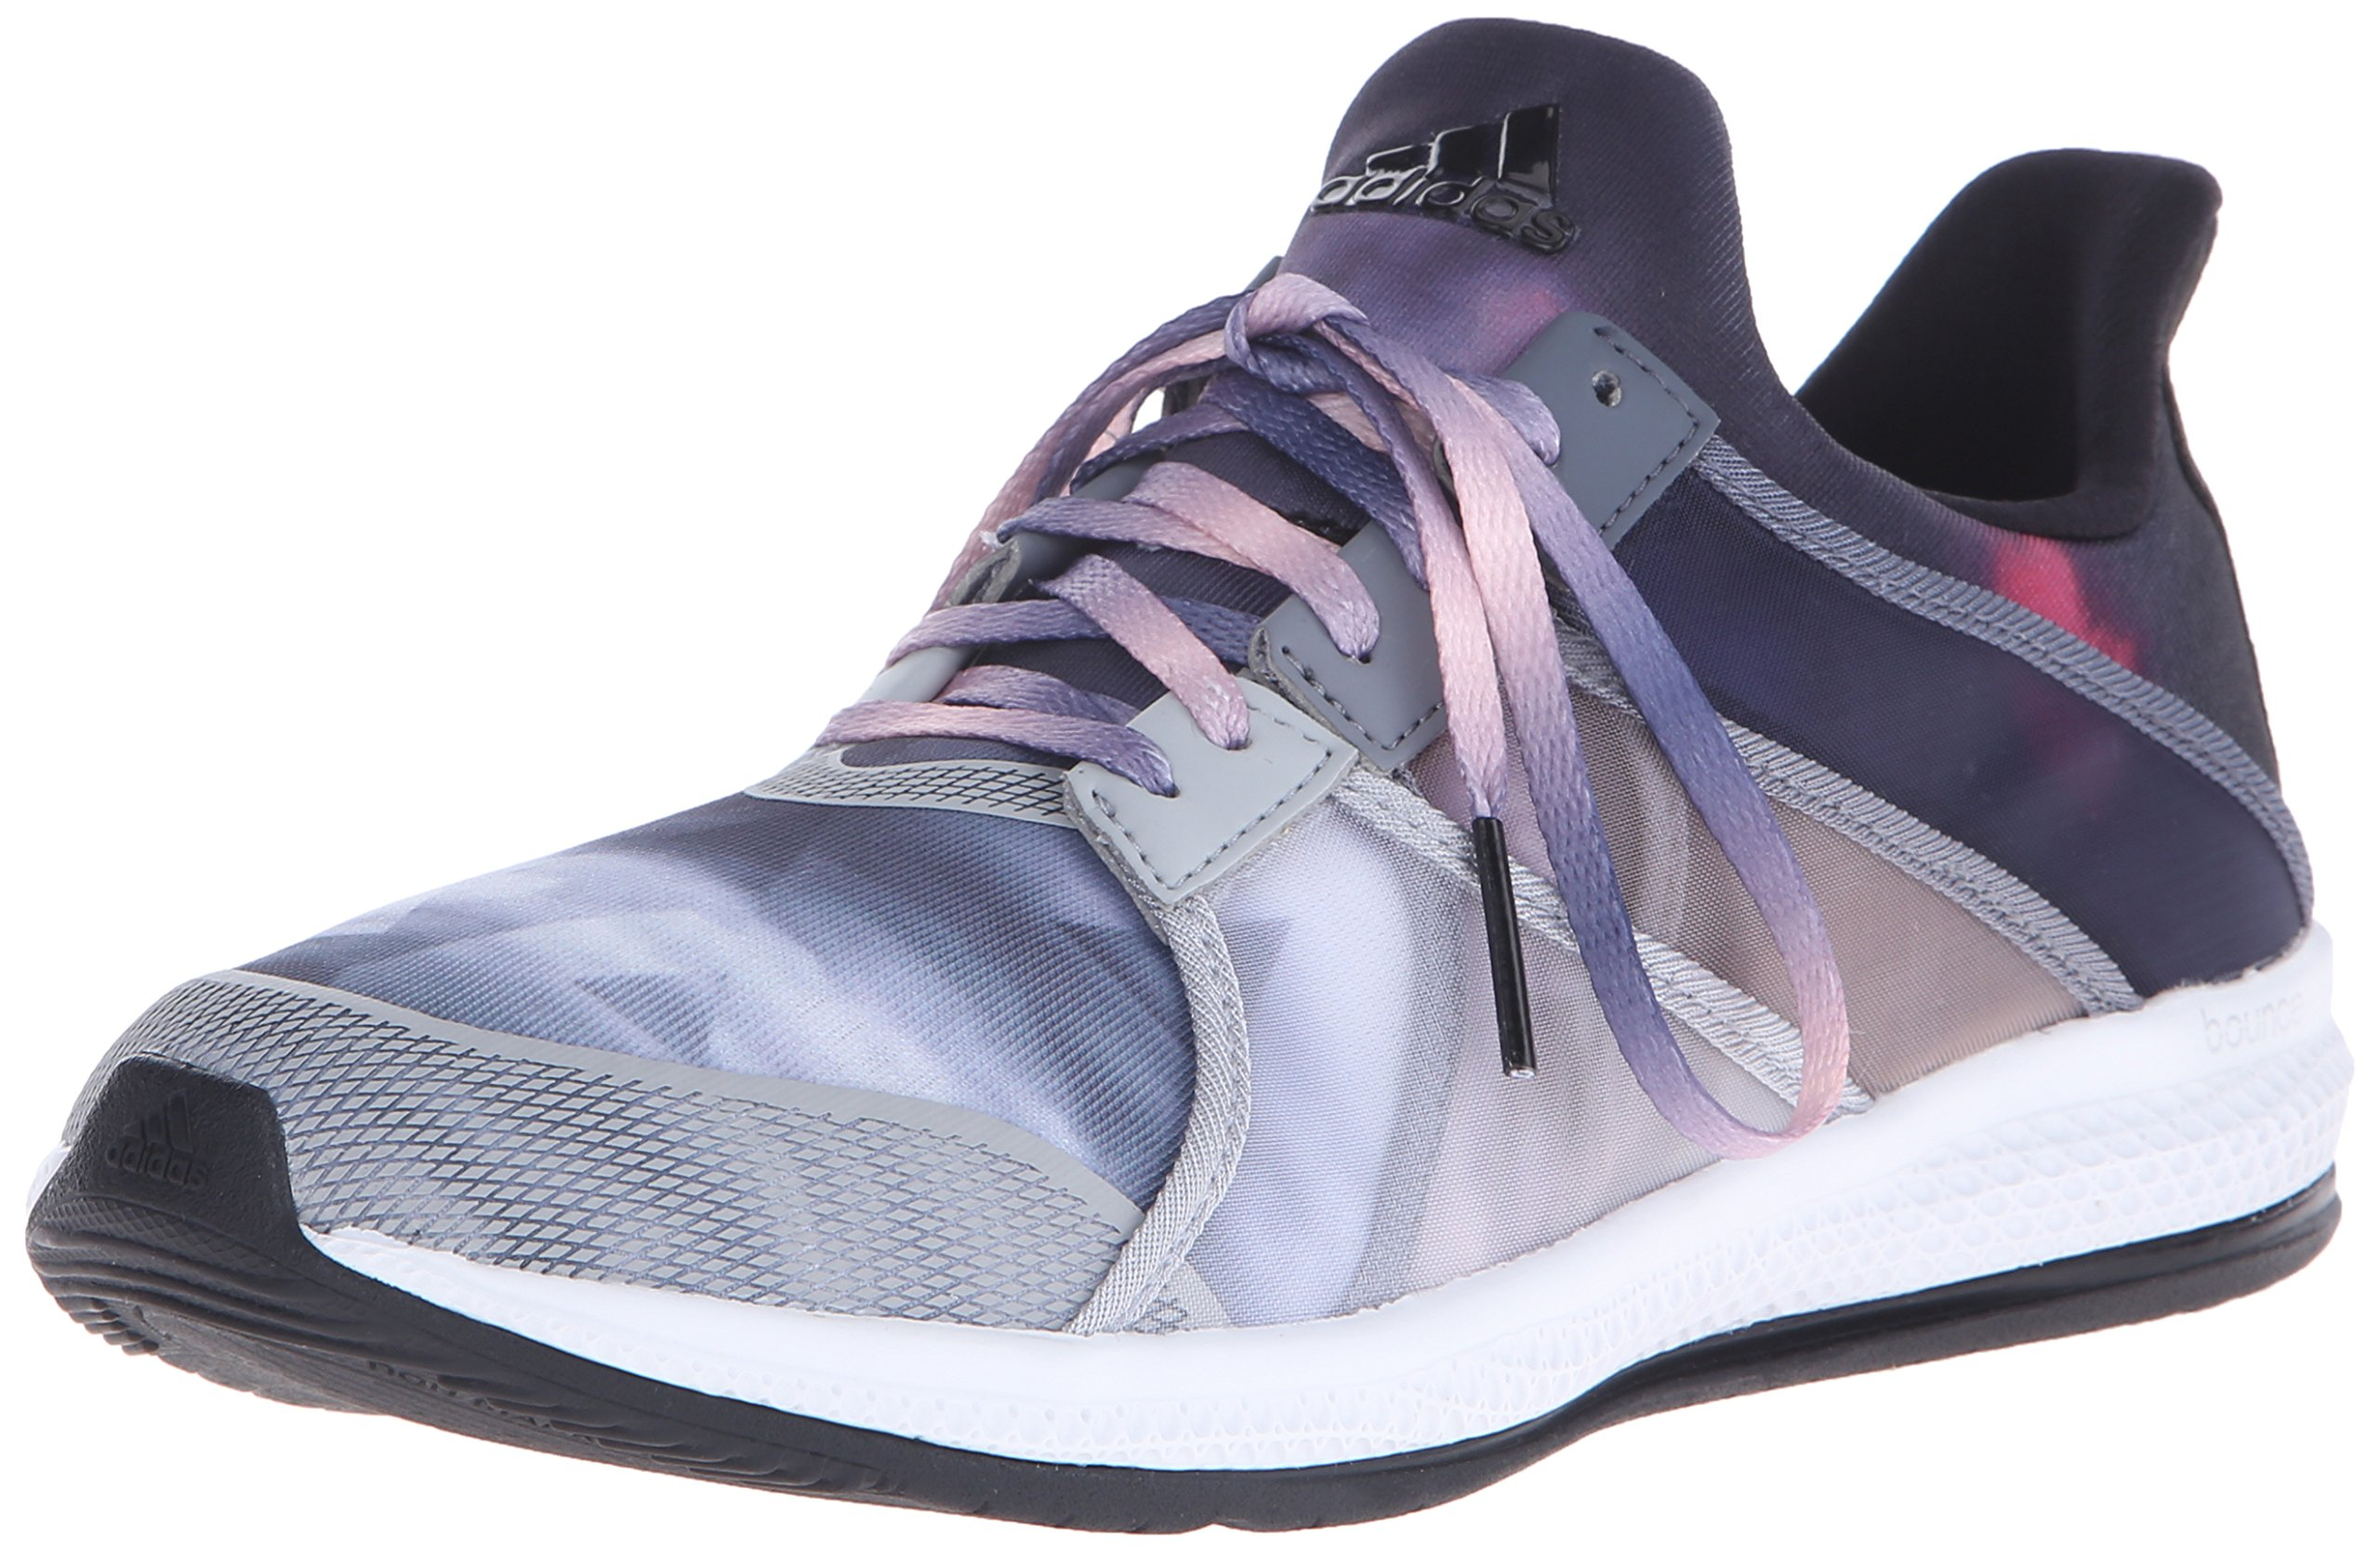 fde424eeb8814 Galleon - Adidas Performance Women s Gymbreaker Bounce Training Shoe ...